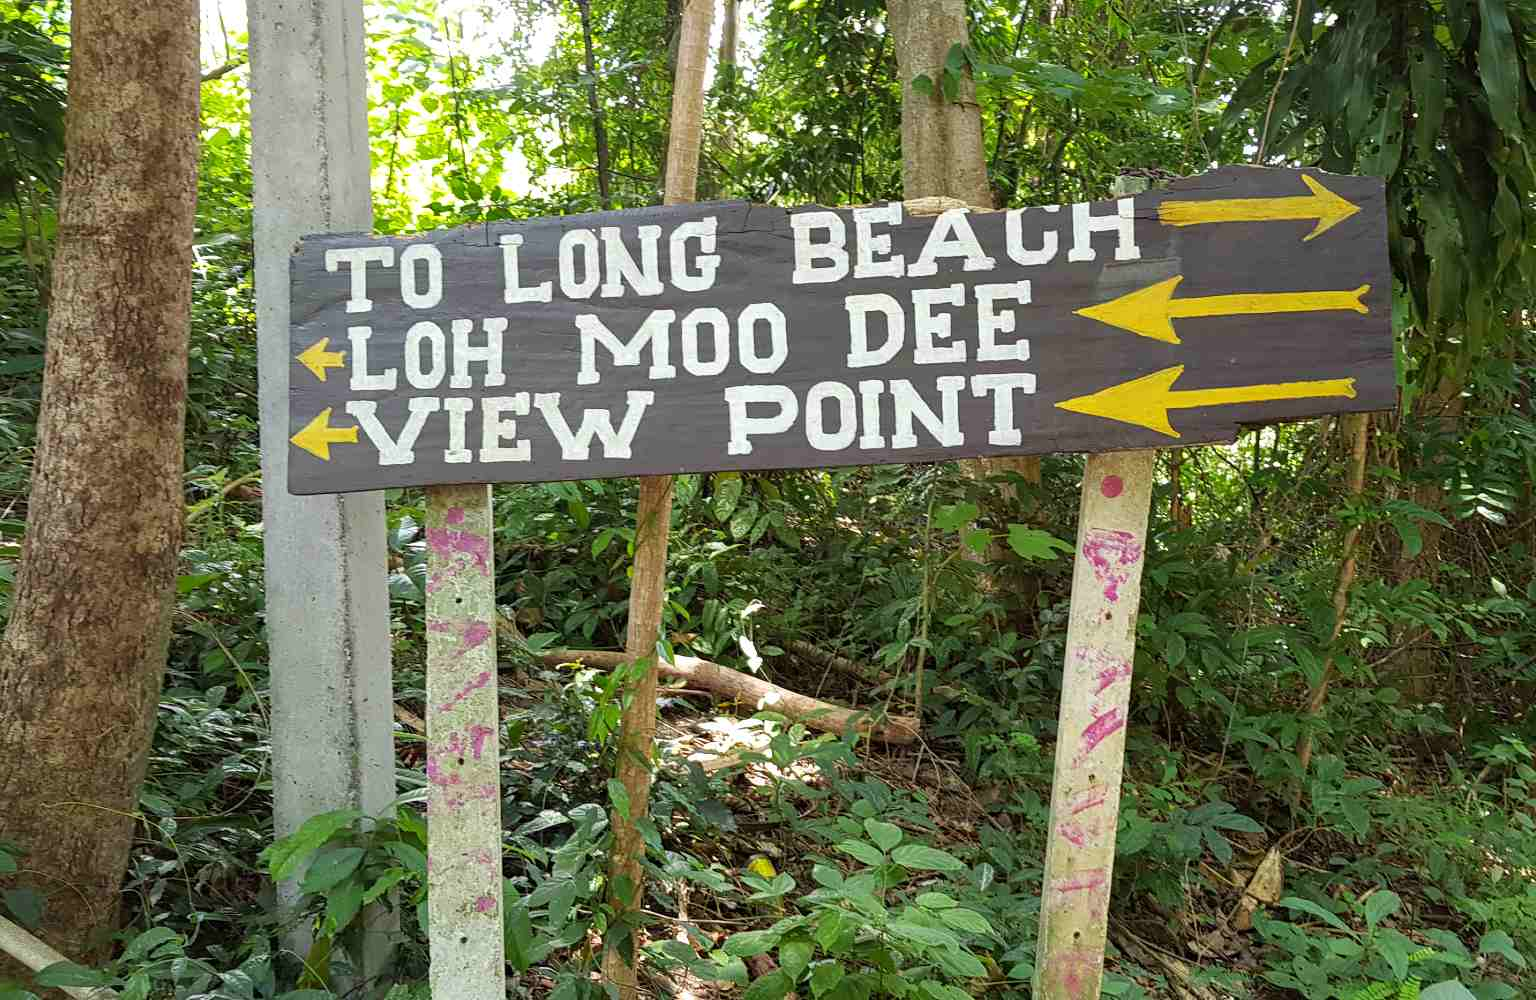 Long Beach, sign with route to Loh Moo Dee beach